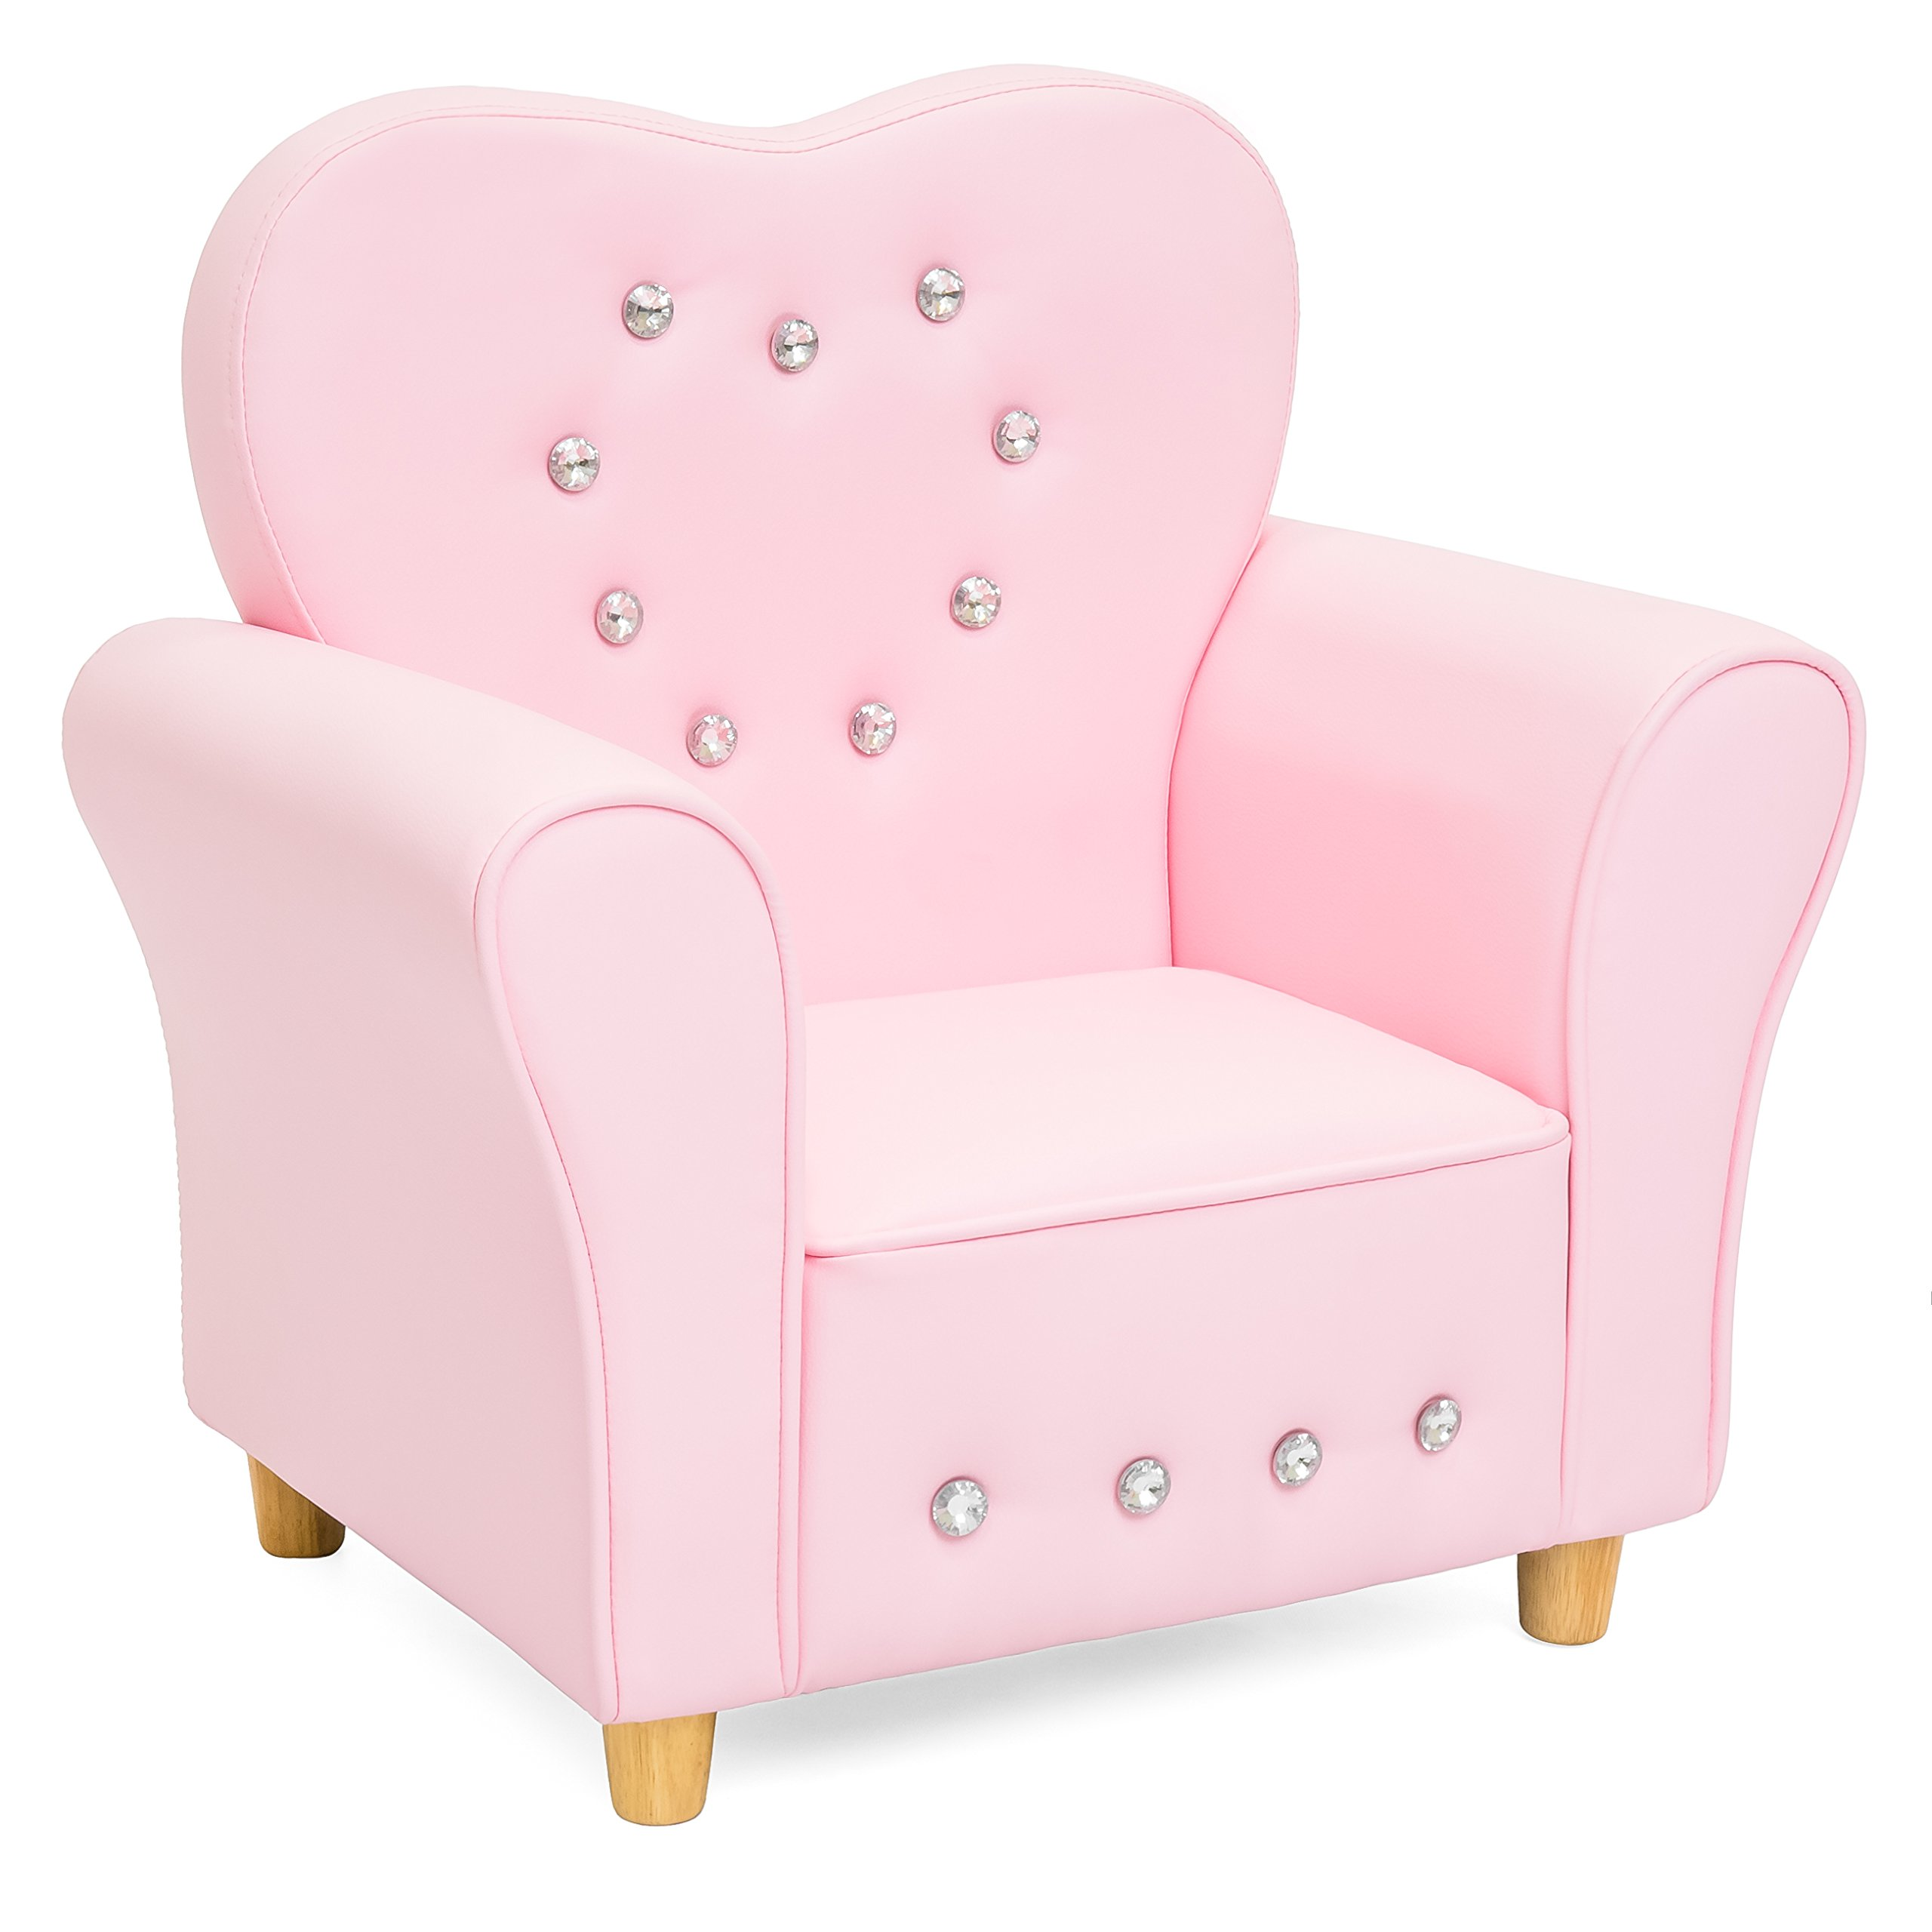 Best Choice Products Kids Heart-Shape Accent Chair Seat w/Armrest and Rhinestones - Pink